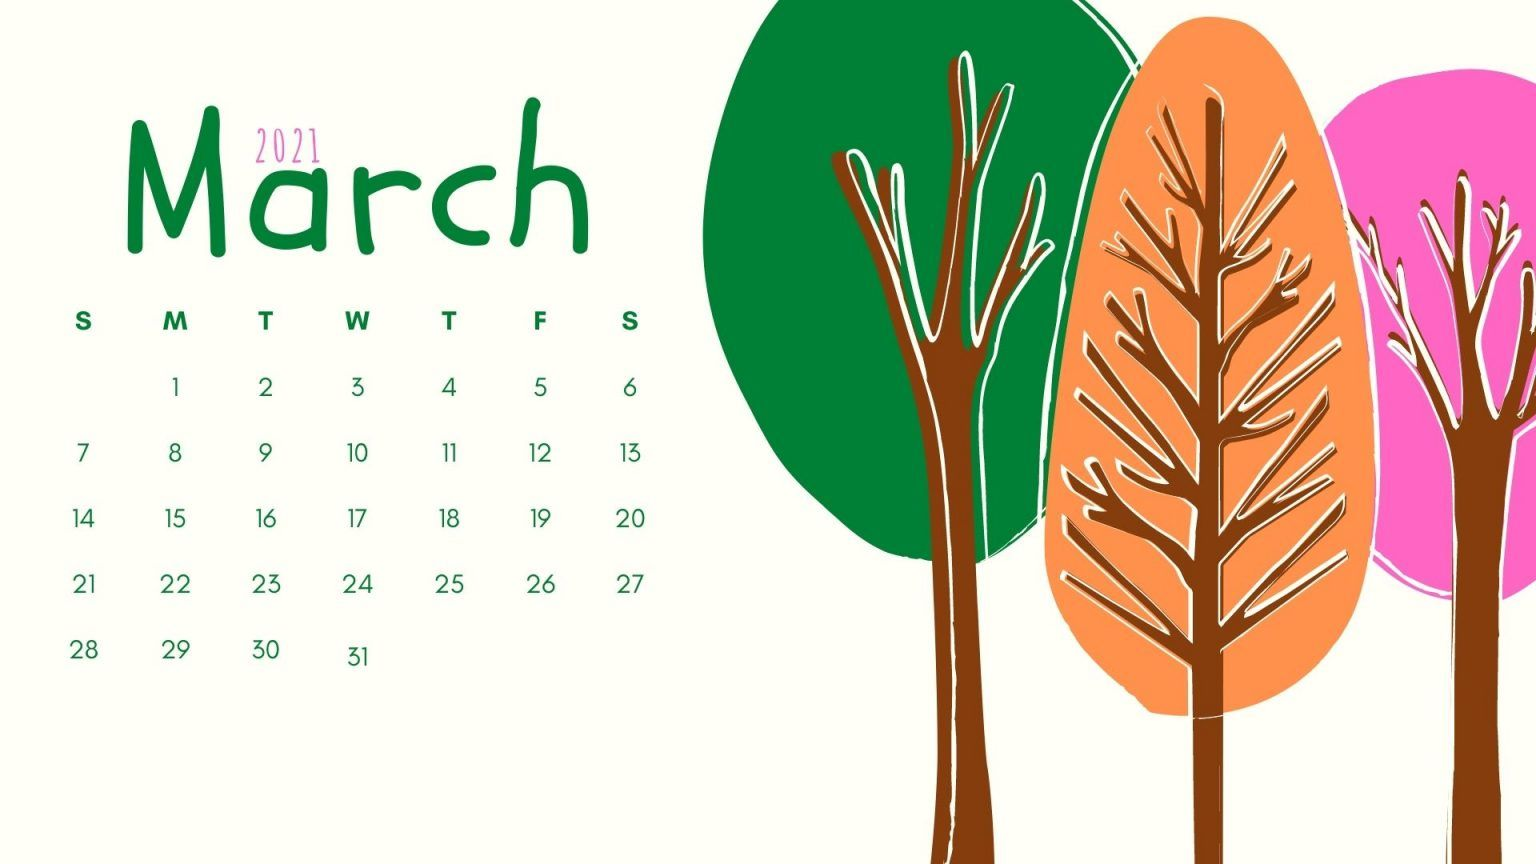 March 2021 Calendar Wallpaper Download Calendar wallpaper 2021